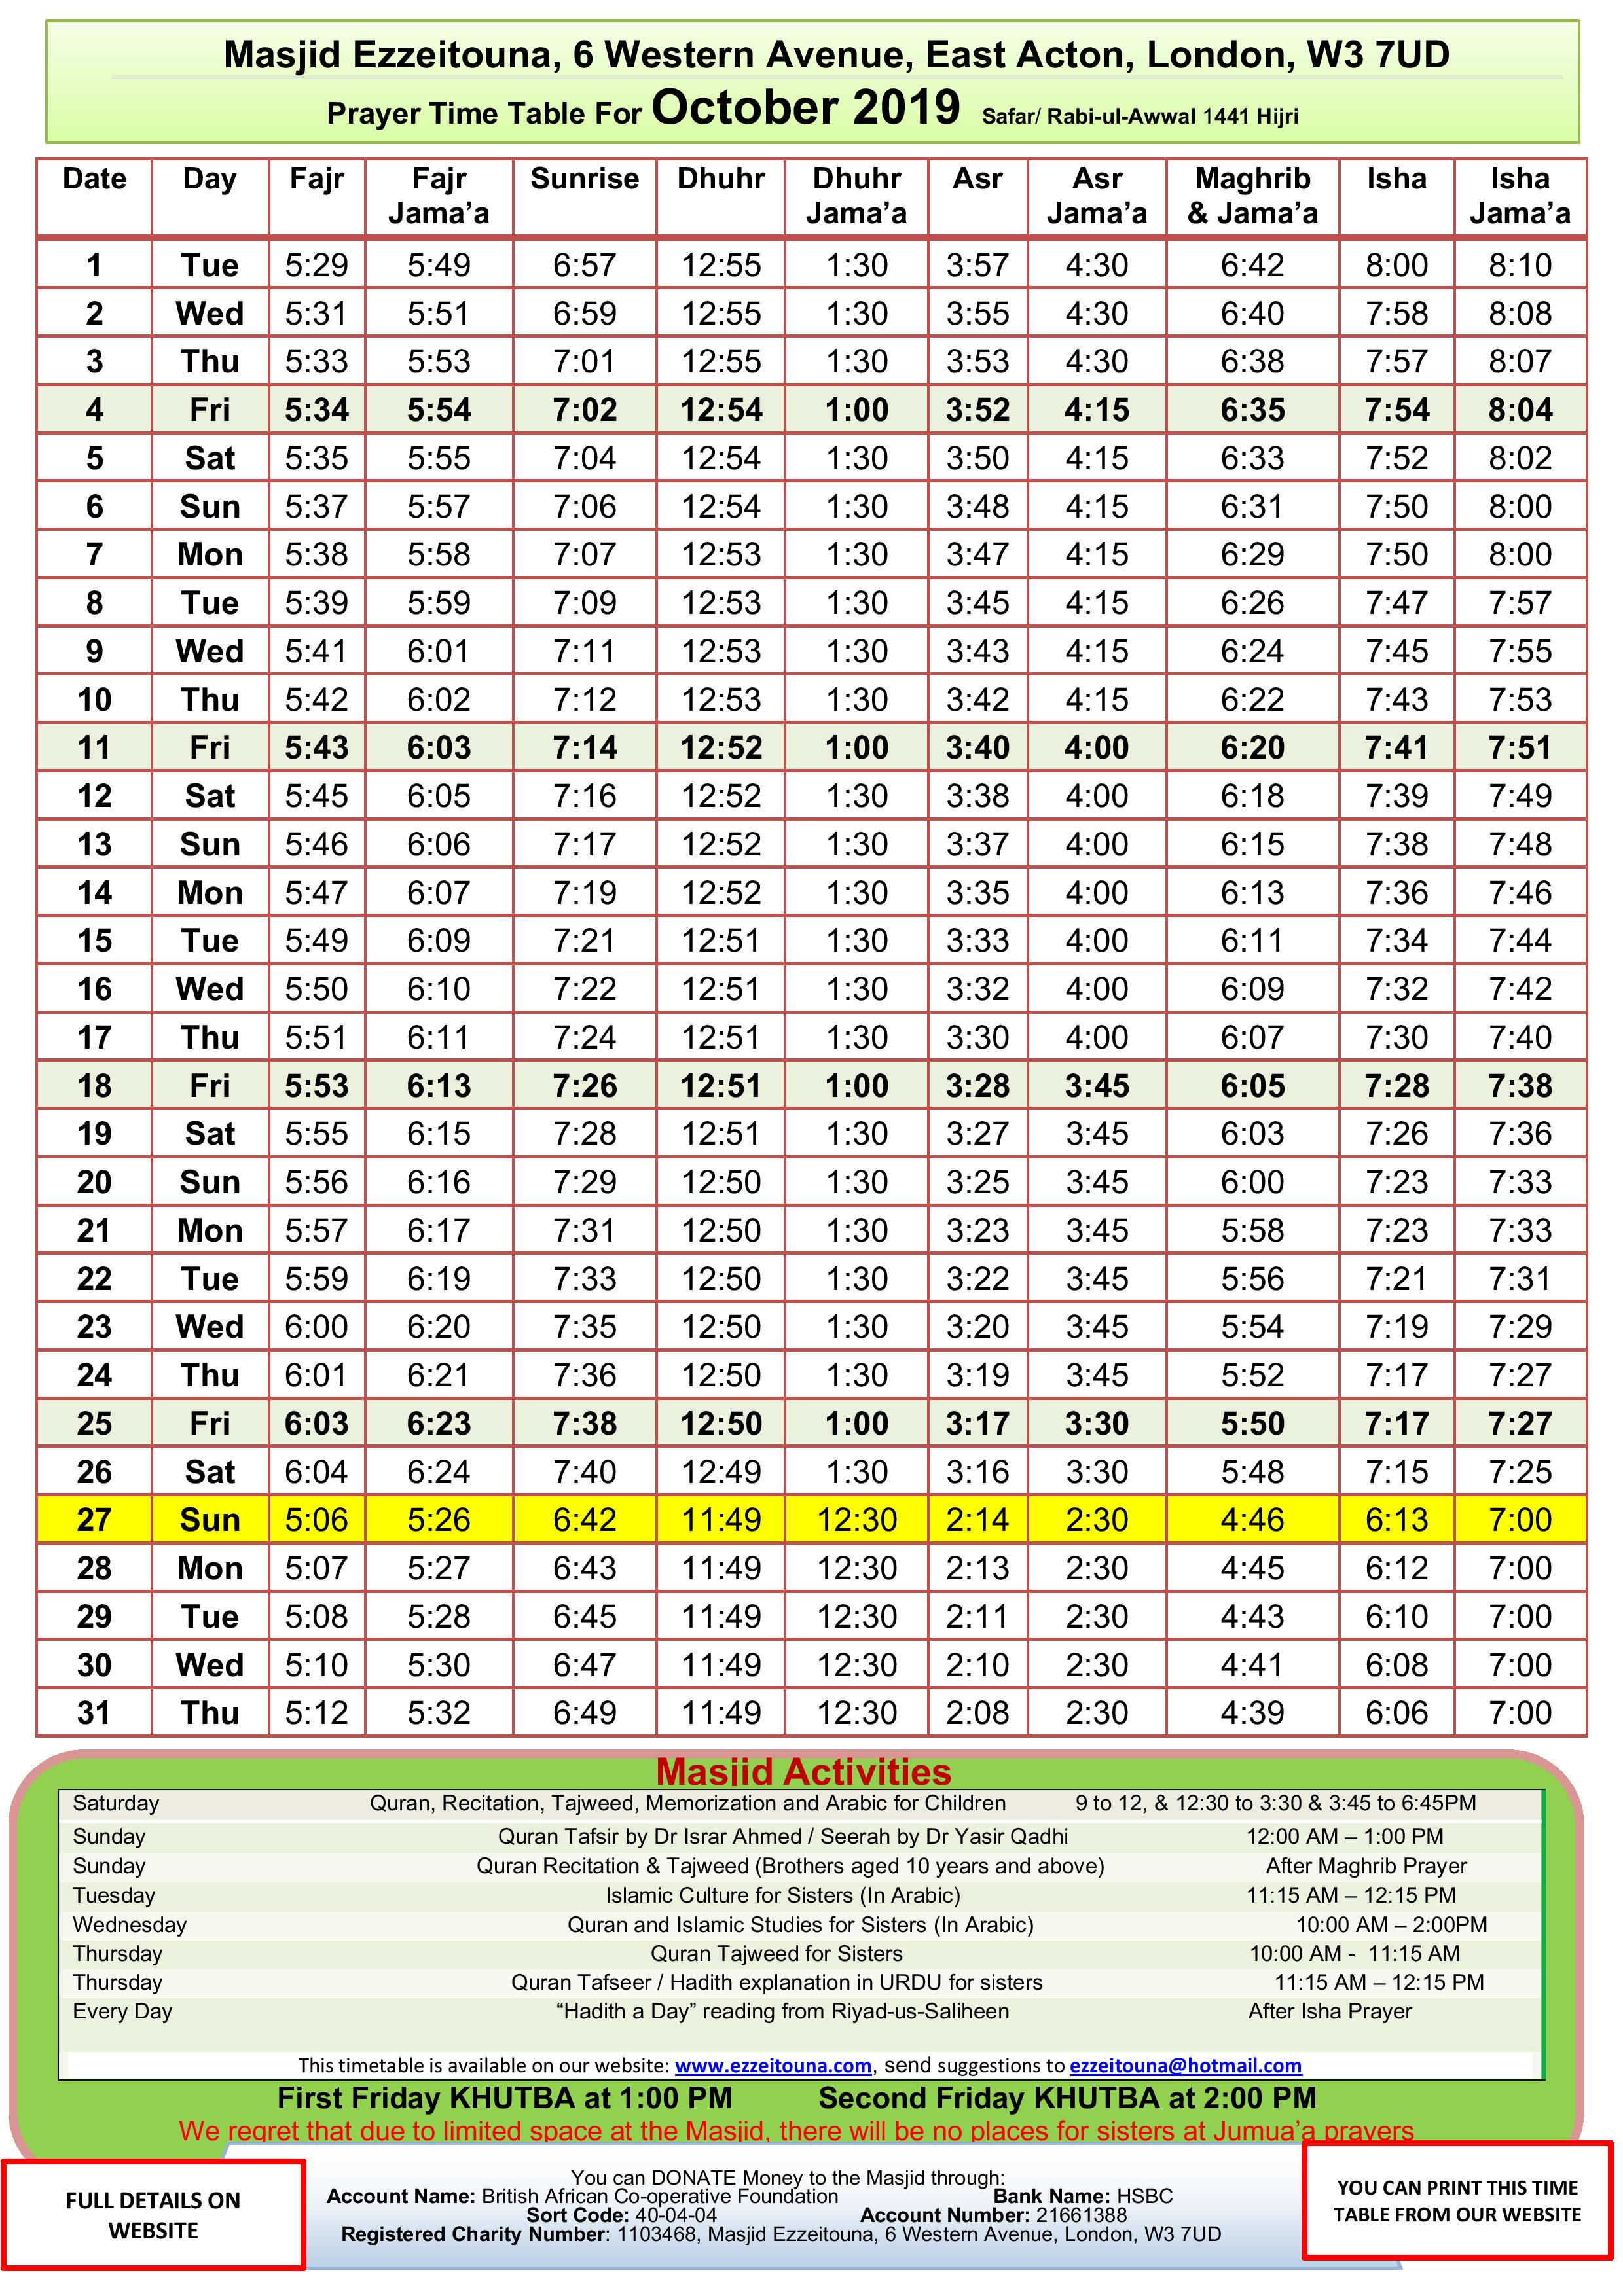 Prayers Timetable for October 2019- Masj